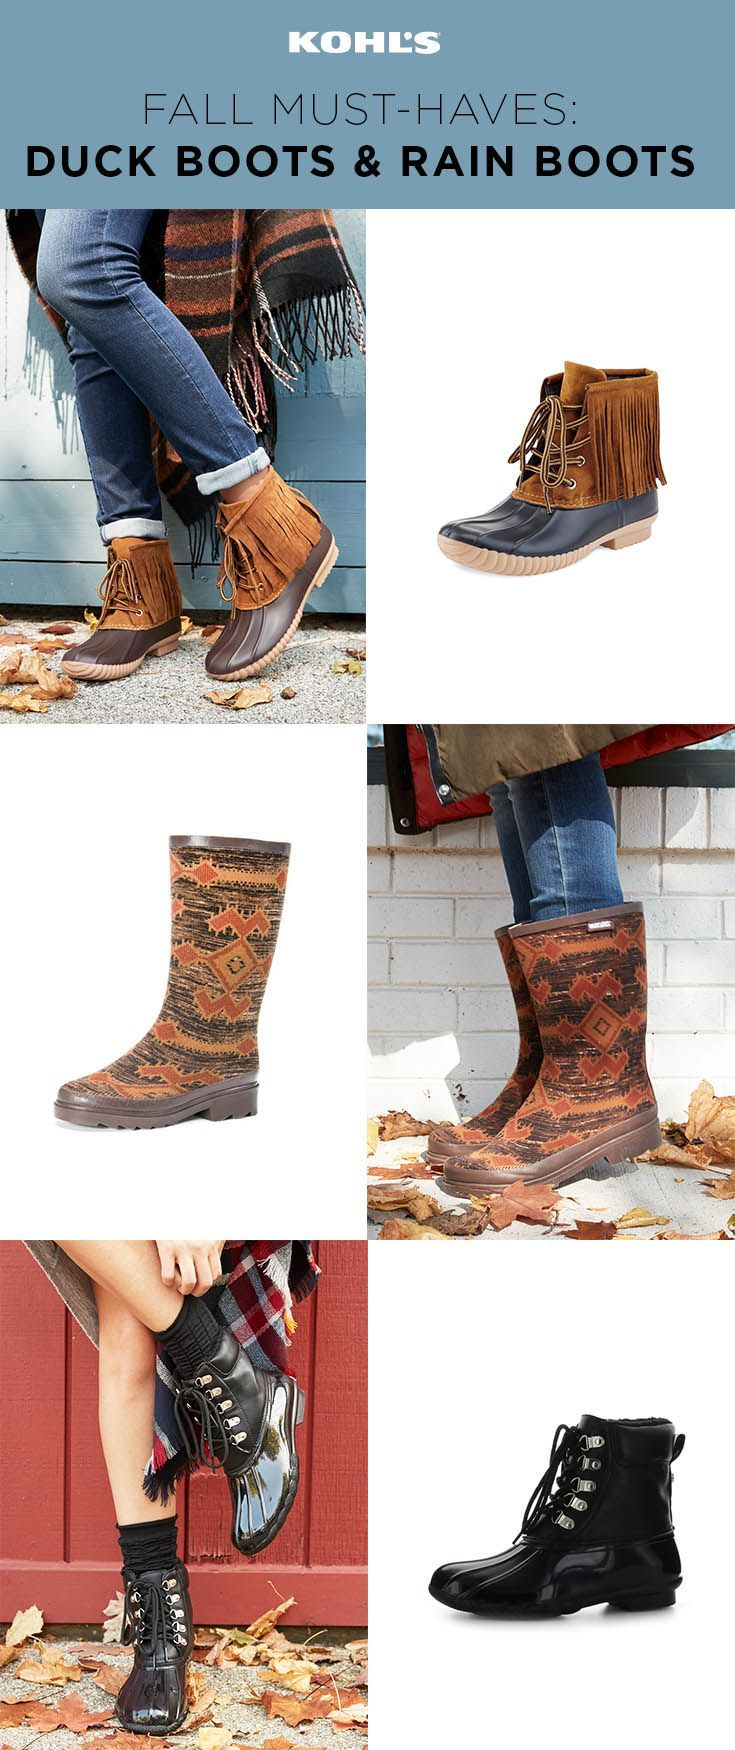 Fall weather can be unpredictable. We